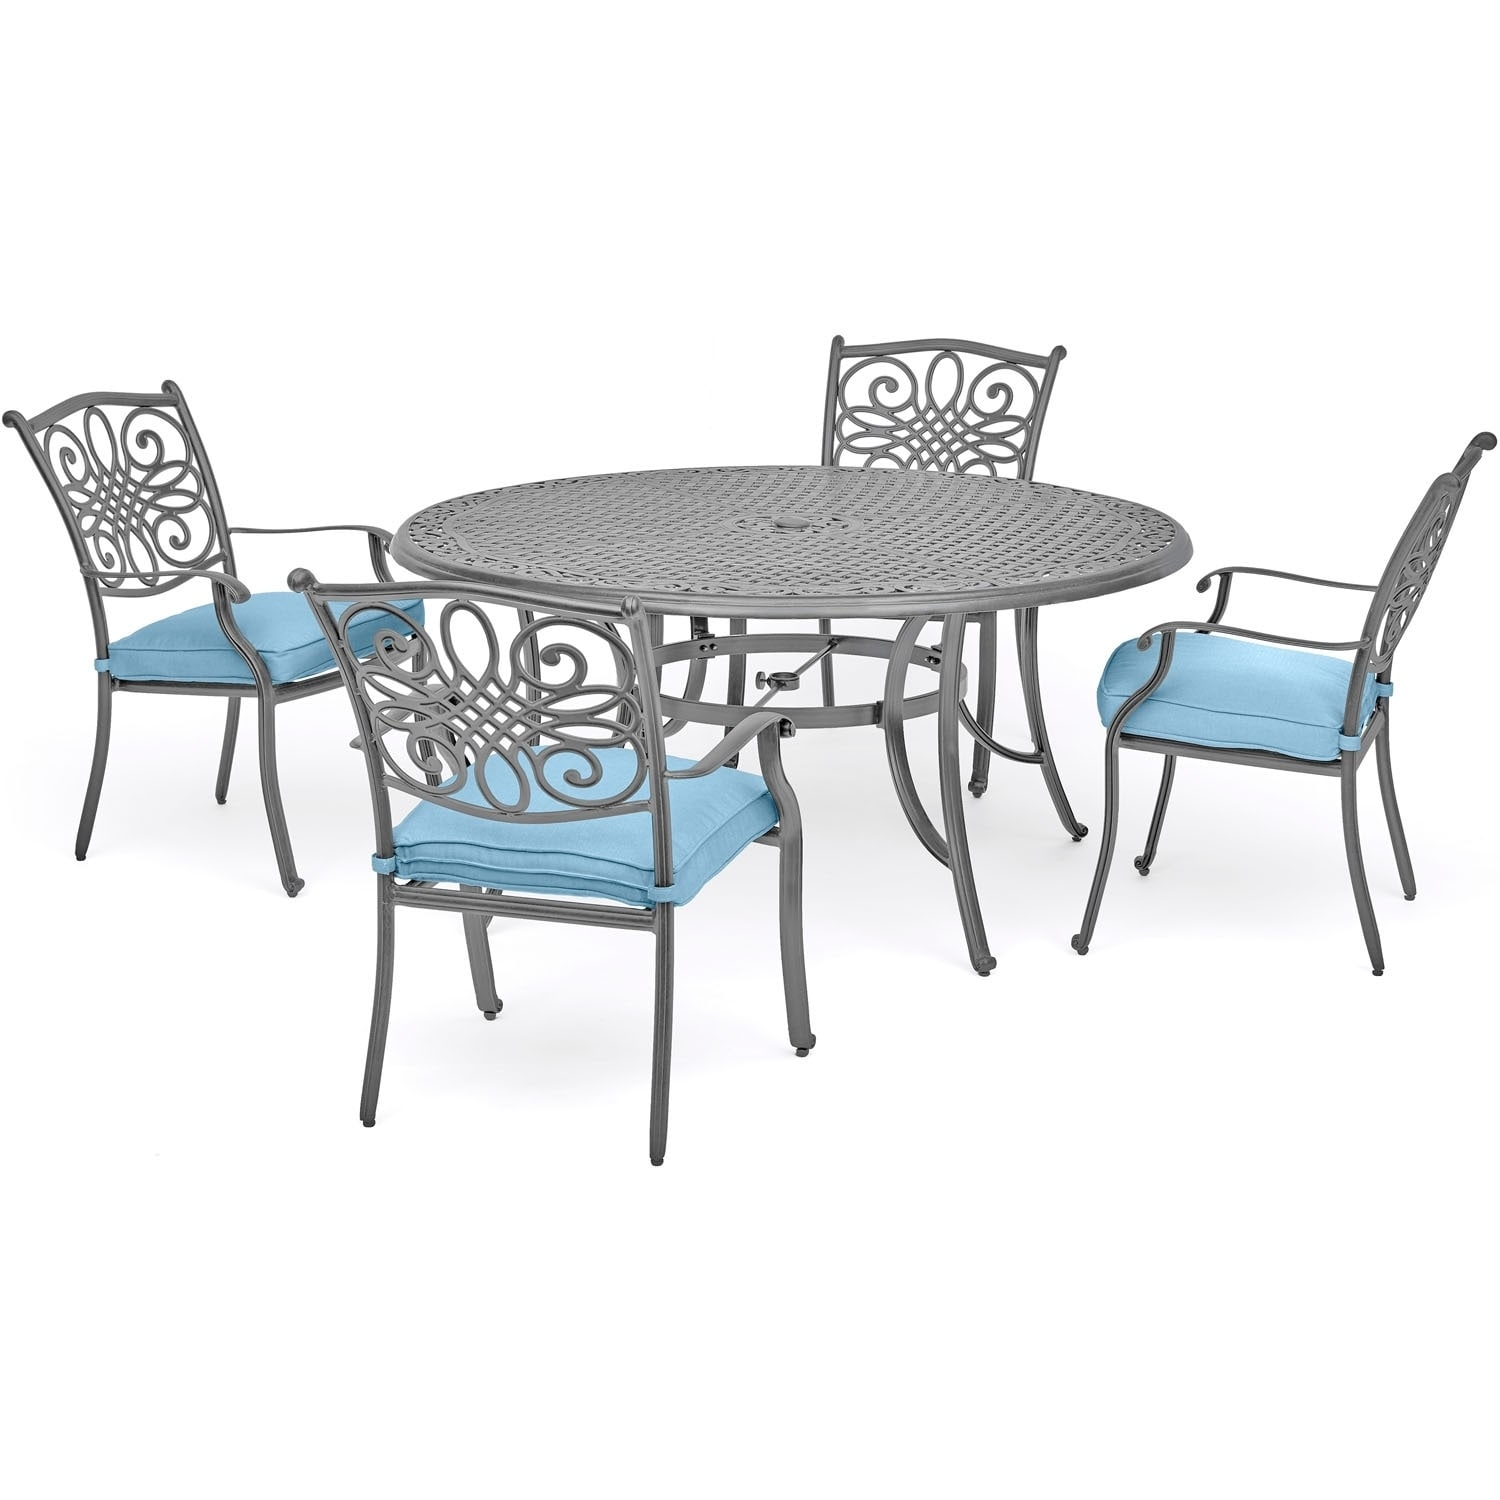 Shop hanover traditions 5 piece dining set in blue with 4 chairs and a 48 round table in a gray finish free shipping today overstock com 21892014